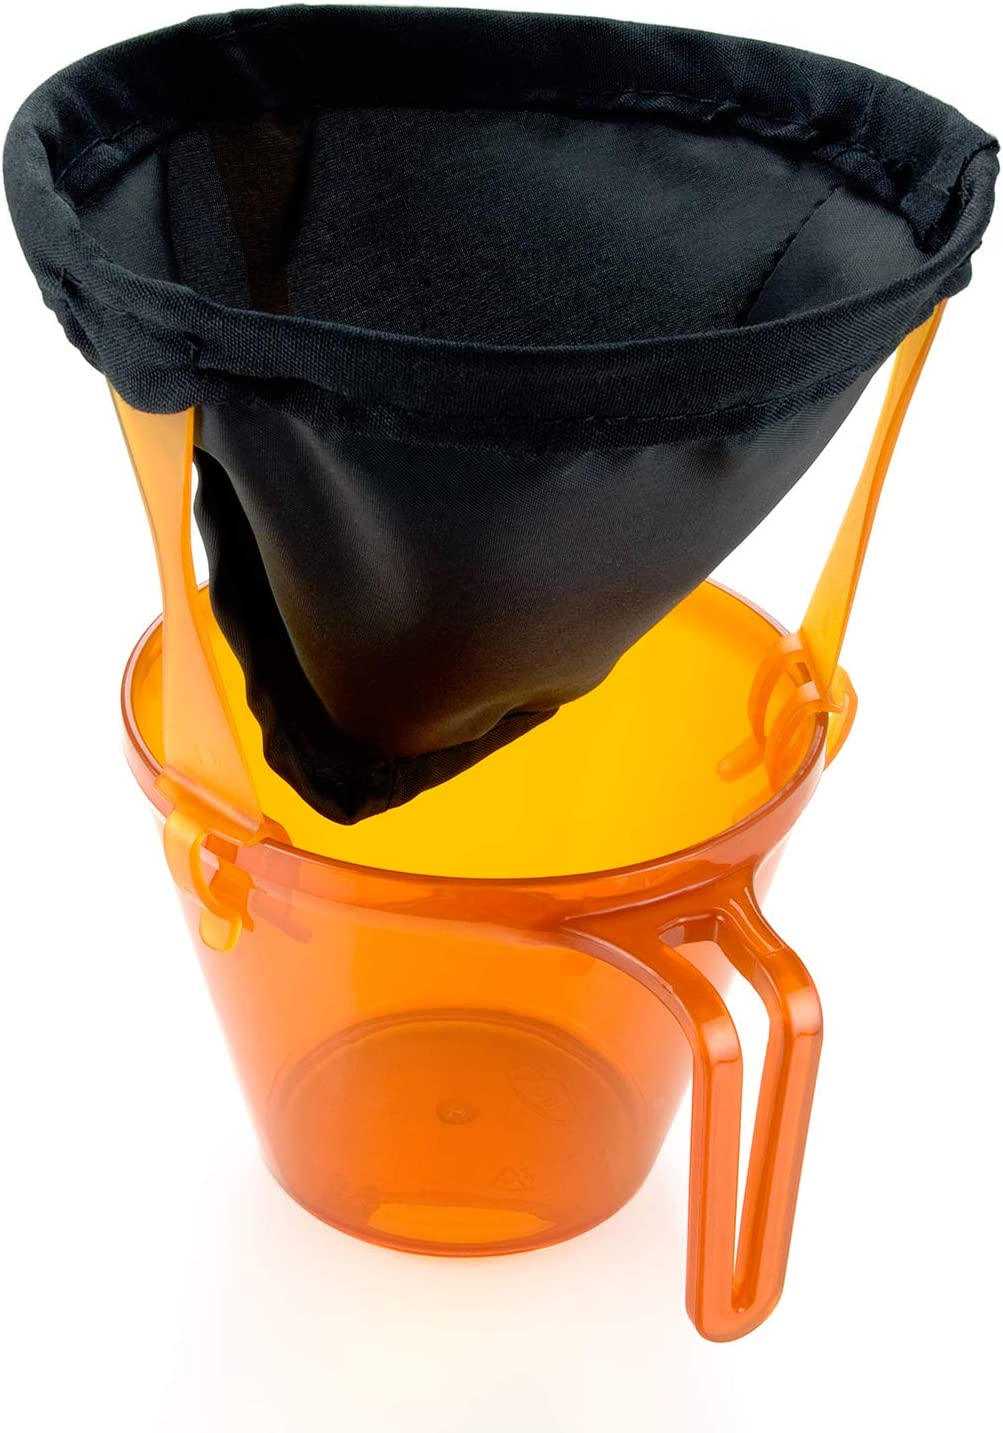 Image of the ultralight Java dripper above an orange pitcher.